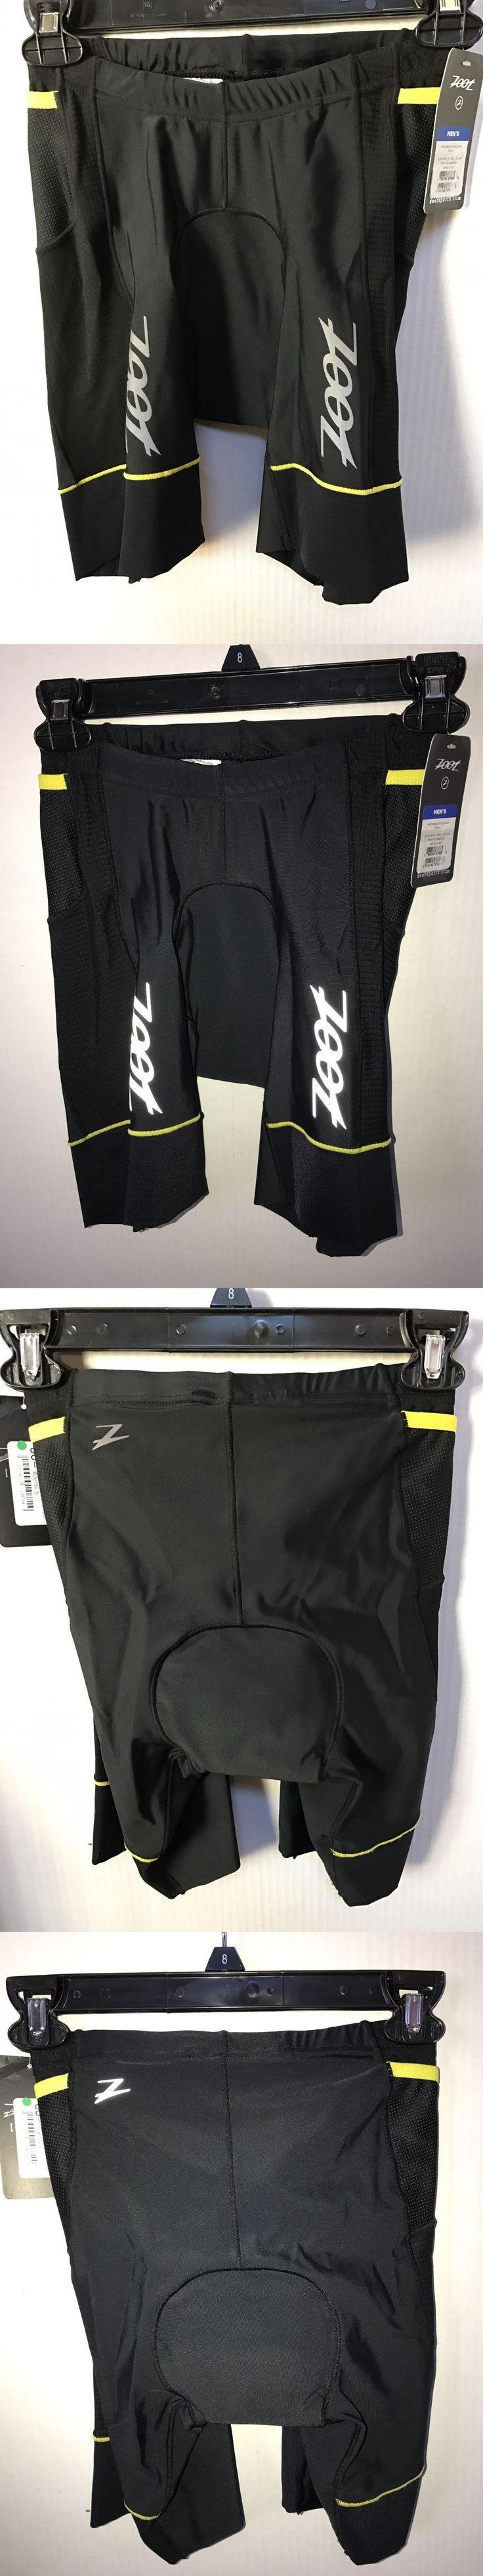 Triathlon 2918: Zoot Performance 8 Mens Tri Triathlon Shorts Black/Yellow Size Small New $80 BUY IT NOW ONLY: $34.95